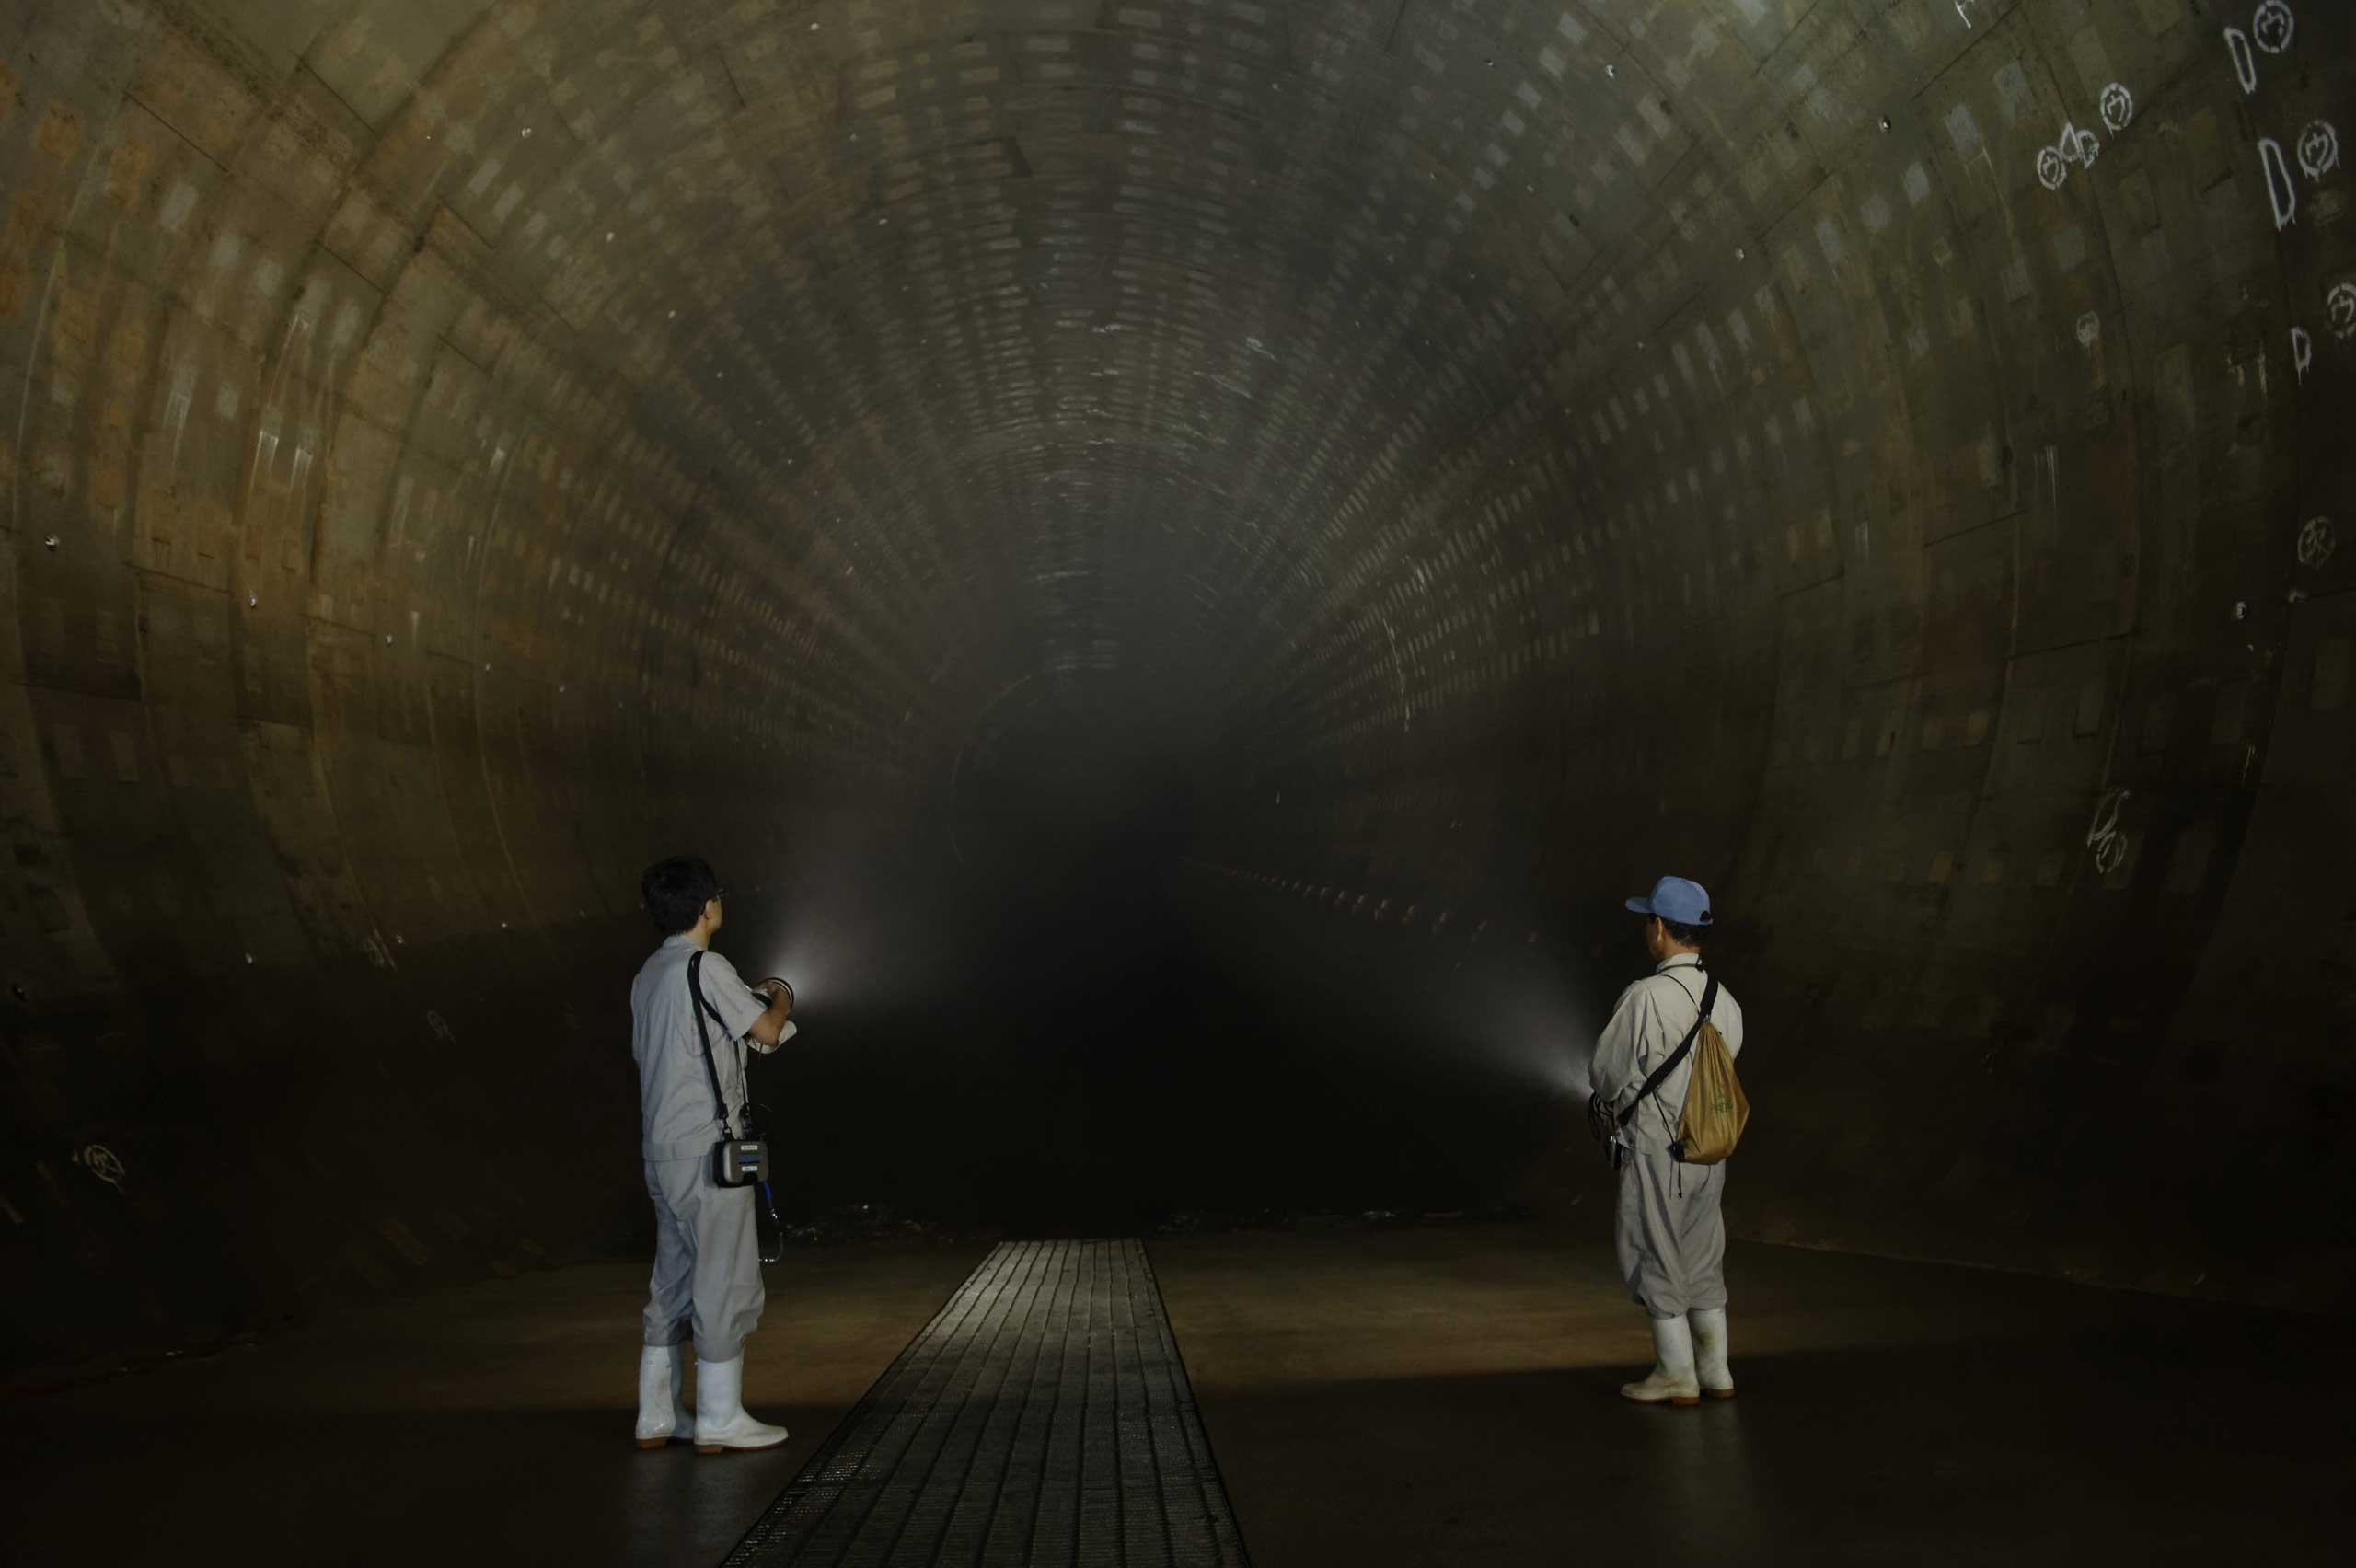 Tokyo Metropolitan Government employees are seen lighting a large underground regulating reservoir in Tokyo, July, 28, 2014.